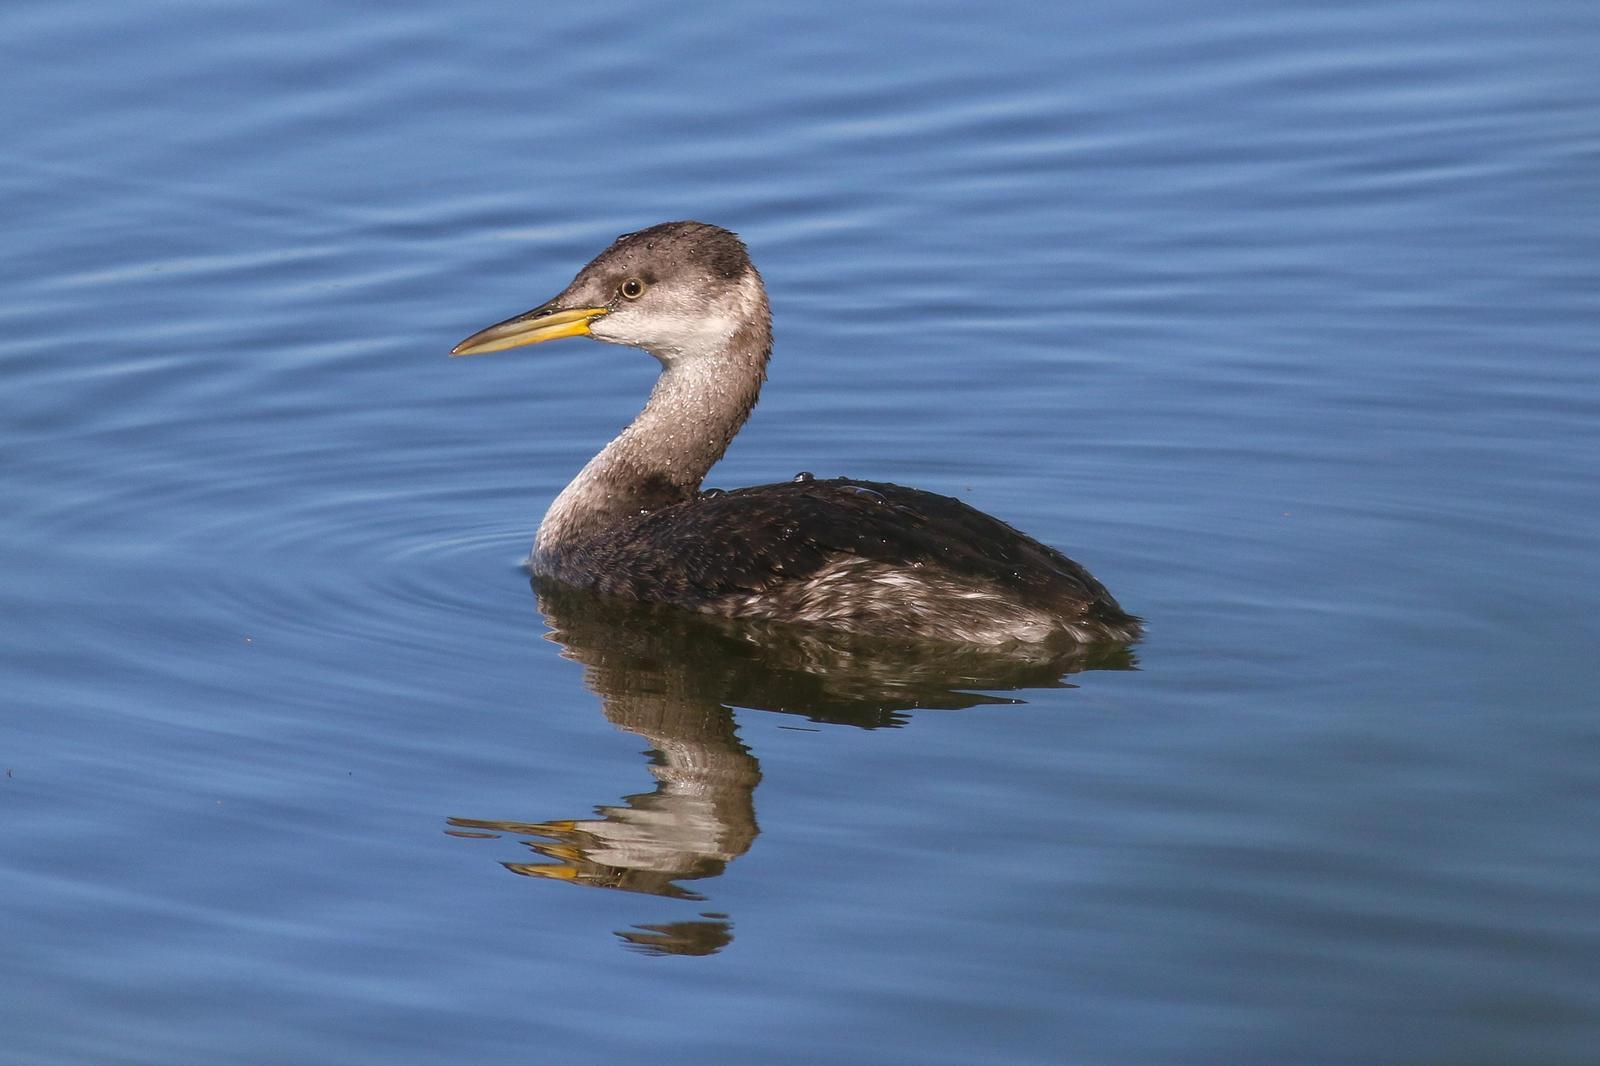 Red-necked Grebe Photo by Tom Ford-Hutchinson